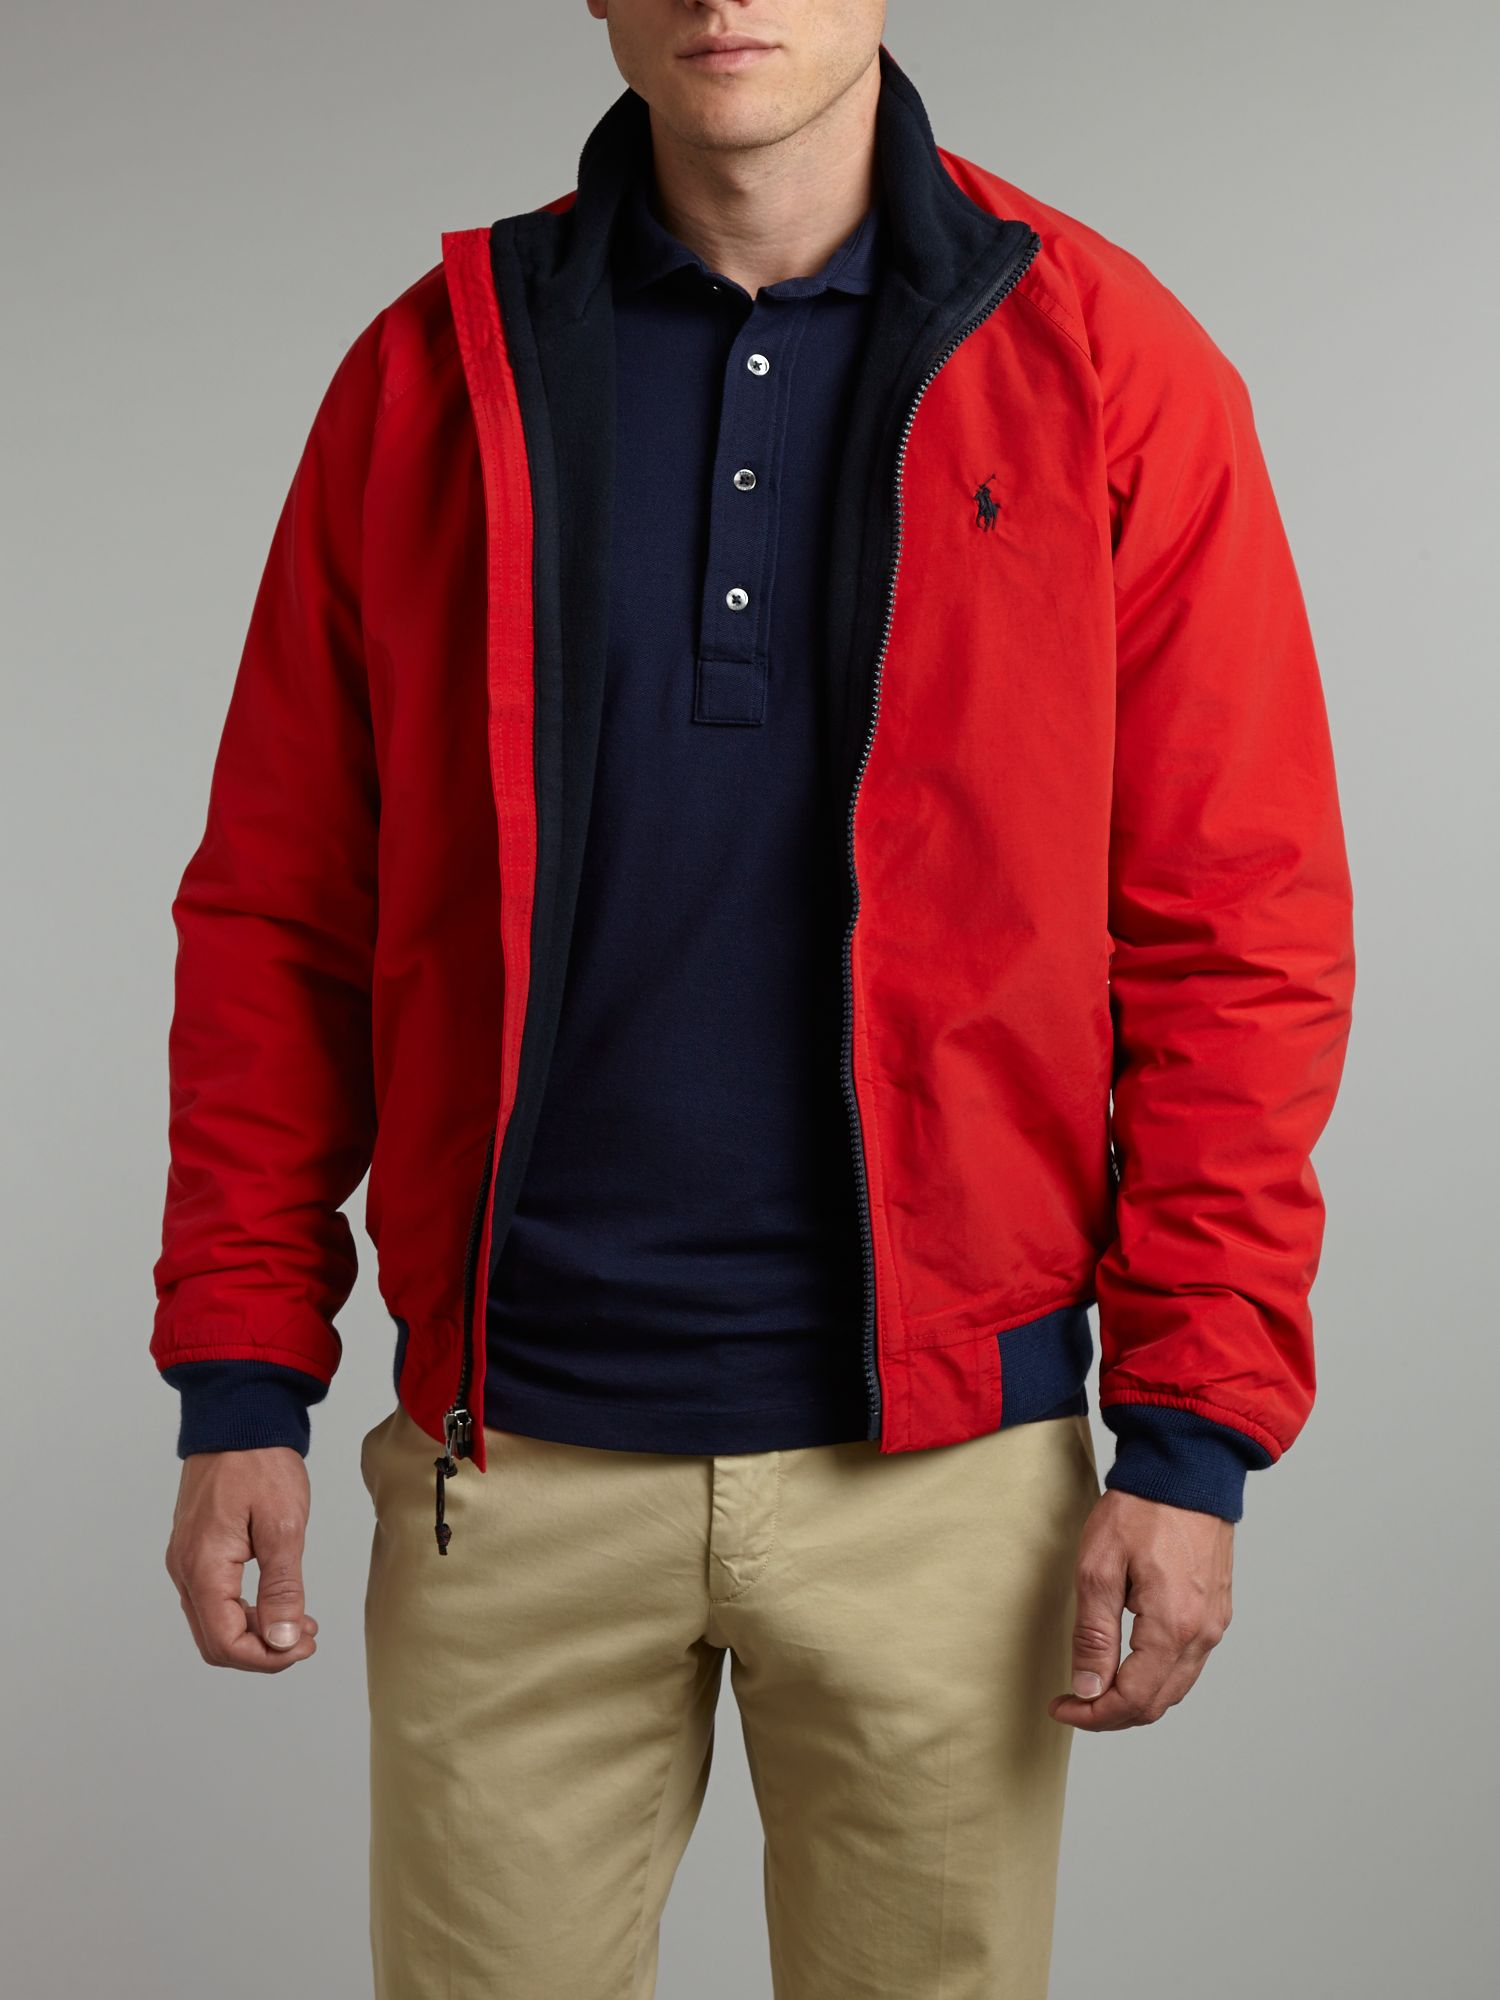 Polo Ralph Lauren Portage Bomber Jacket In Red For Men Lyst